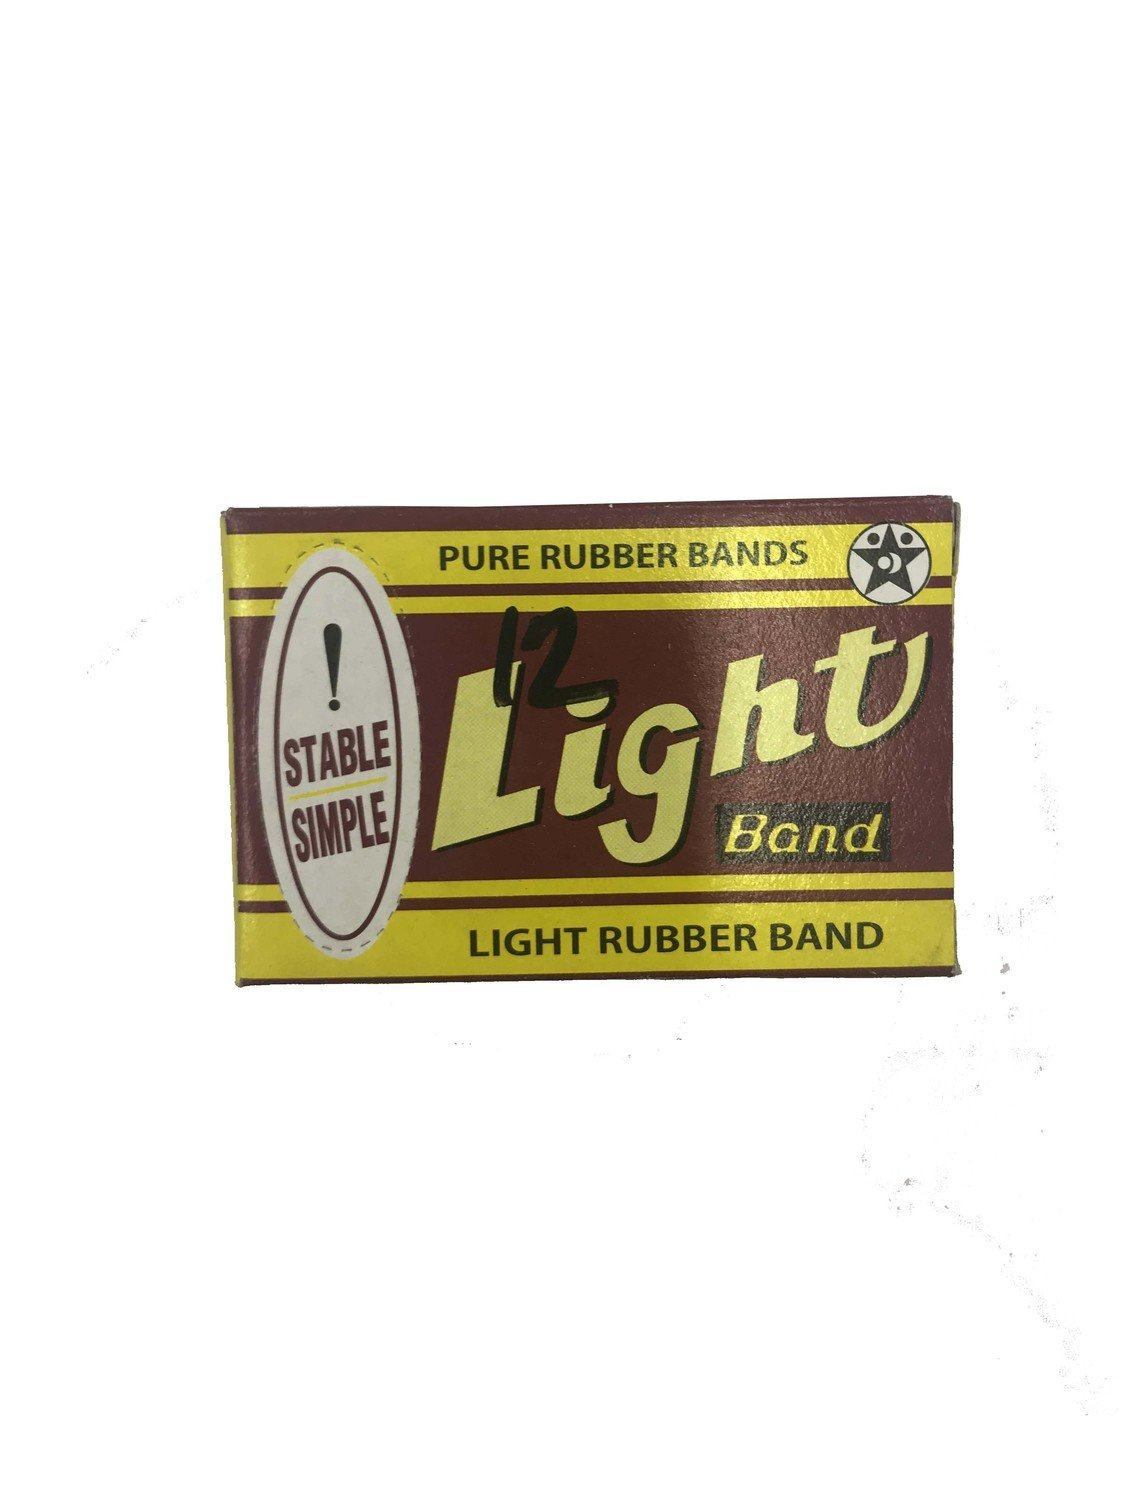 Light Band Pure Rubber Bands